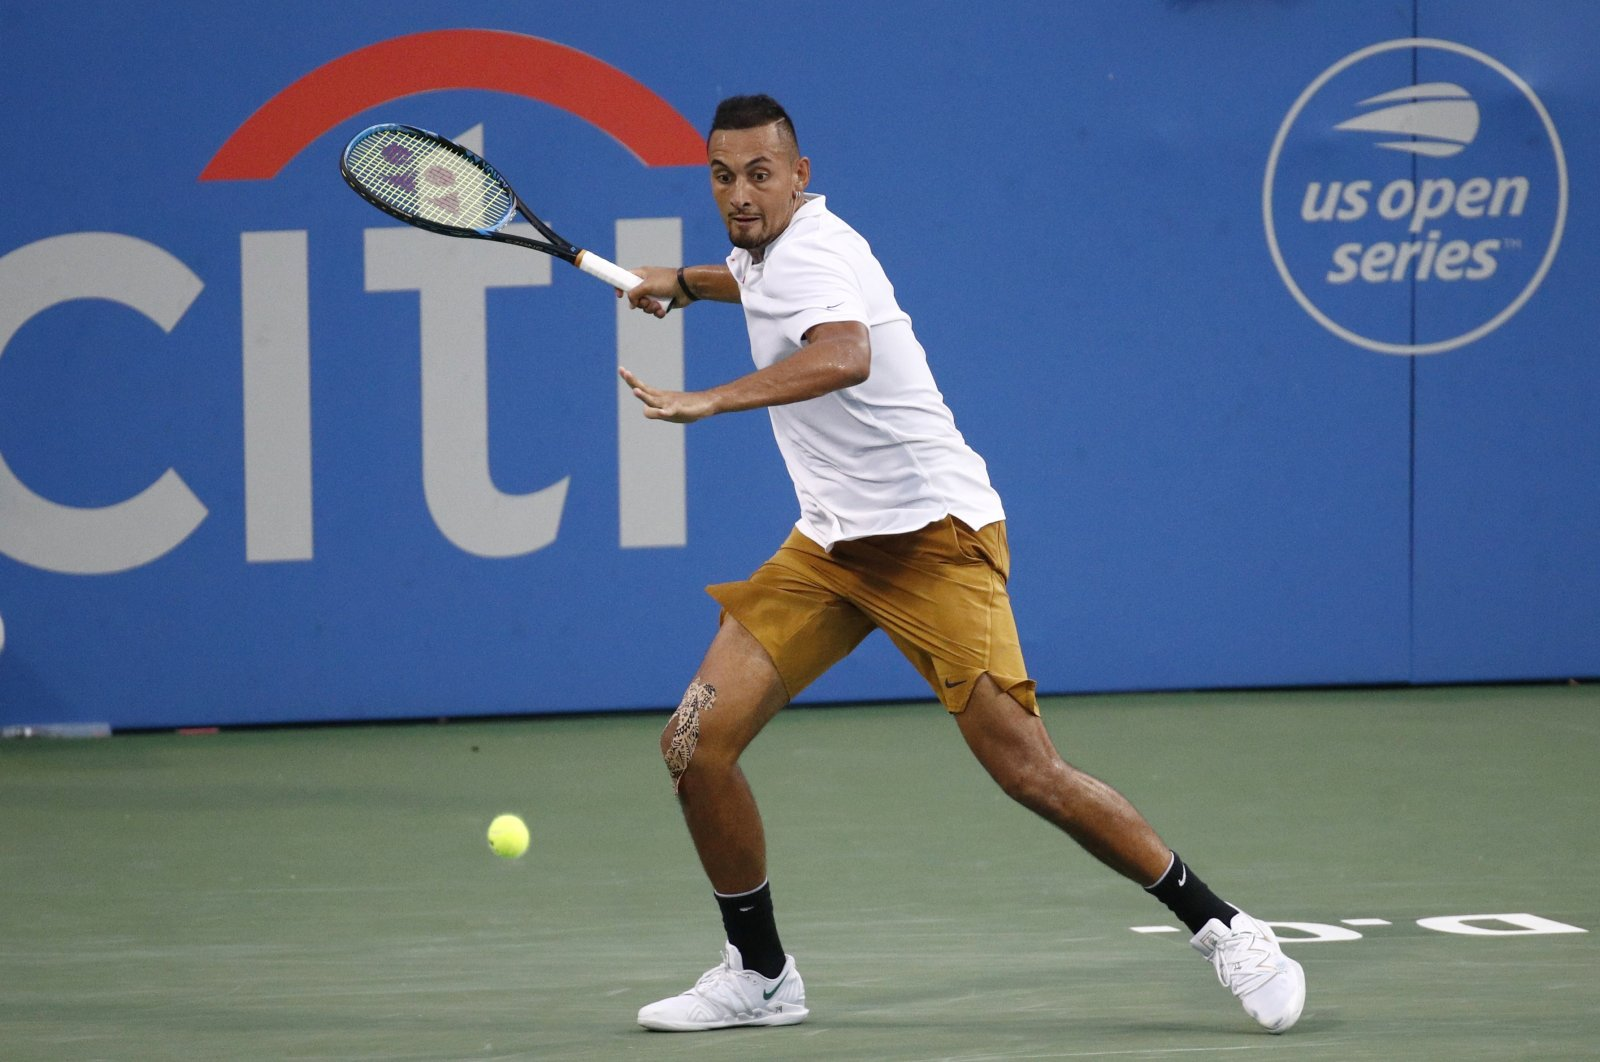 Nick Kyrgios during the Citi Open in Washington, U.S., Aug. 3, 2019. (AP Photo)